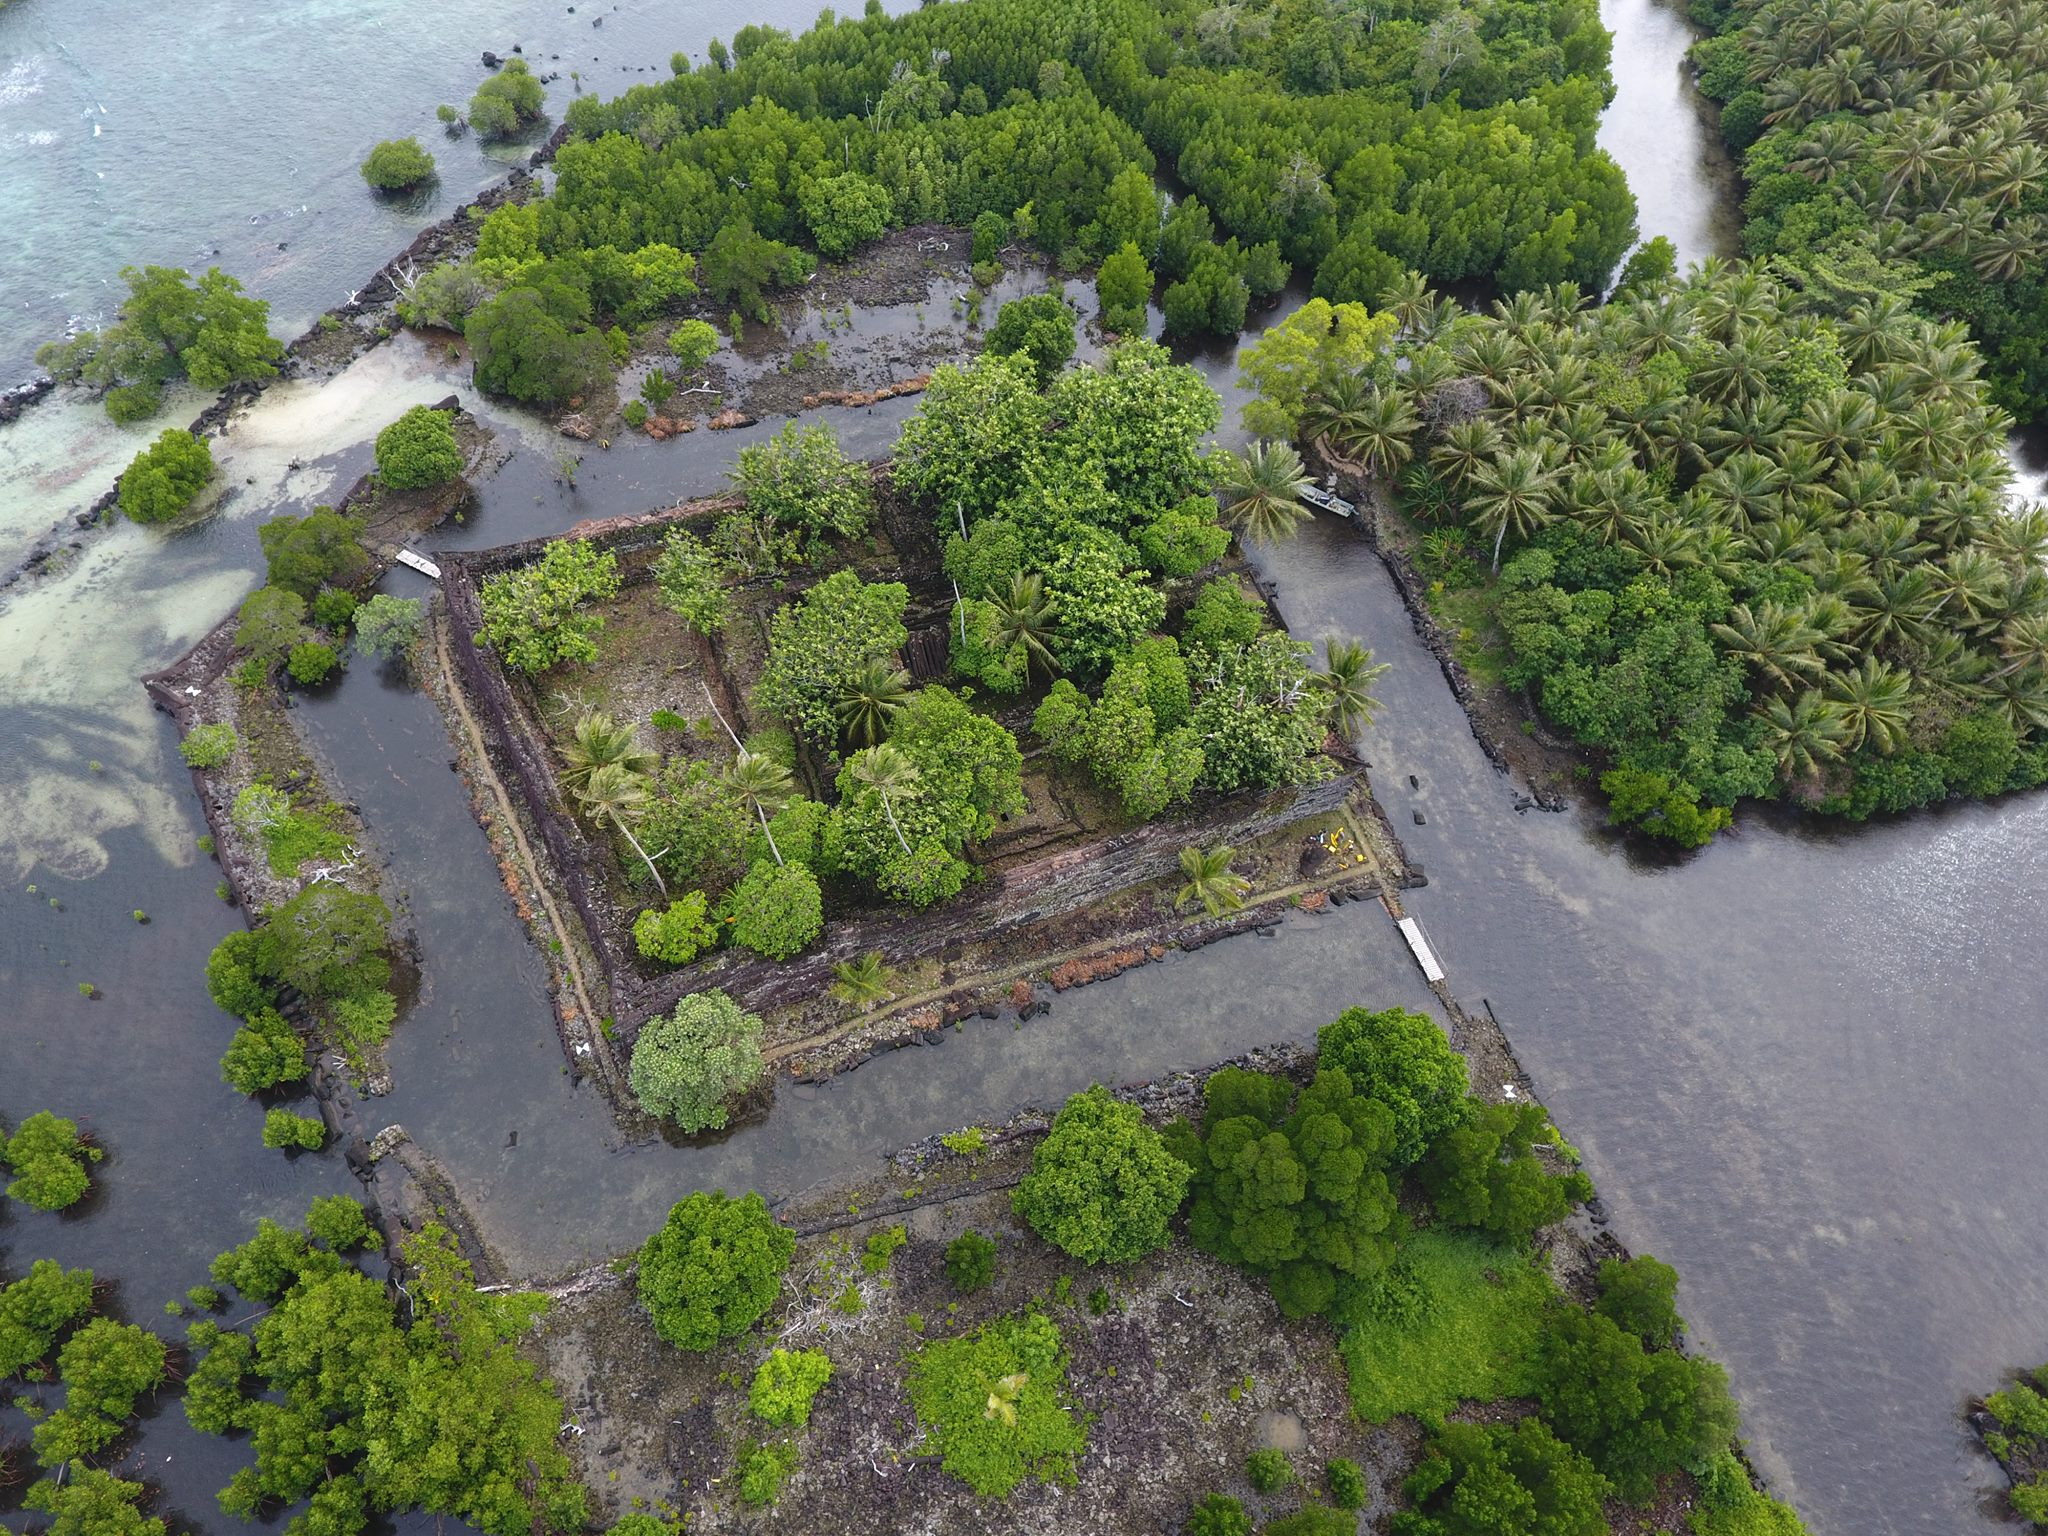 An aerial view, taken from a drone, of Nan Dowas, perhaps the most iconic of Nan Madol's approximately 100 human-made islets.